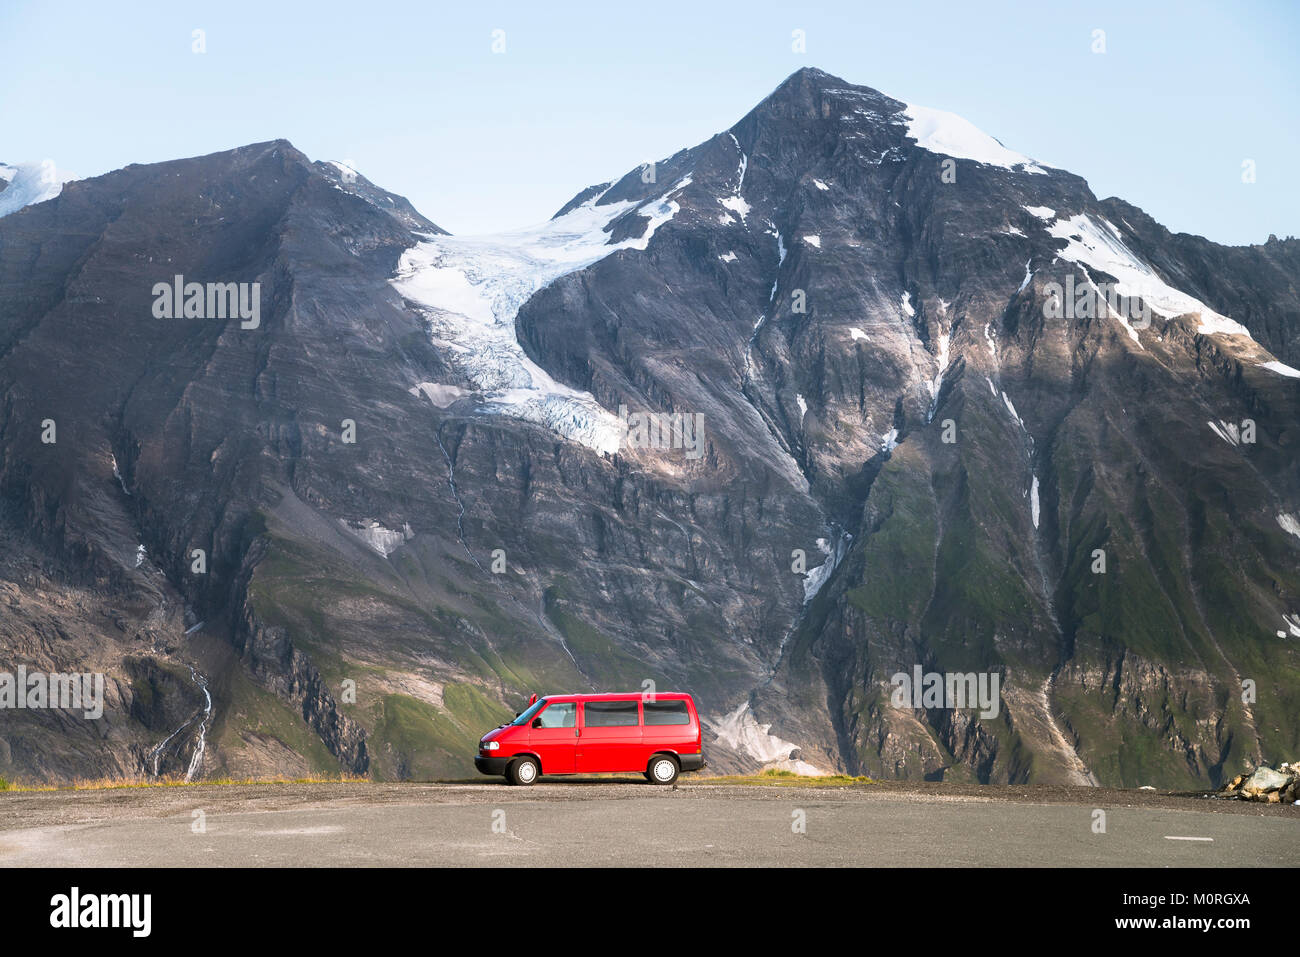 Austria, Salzburg State, VW Bus parked at Grossglockner High Alpine Road - Stock Image